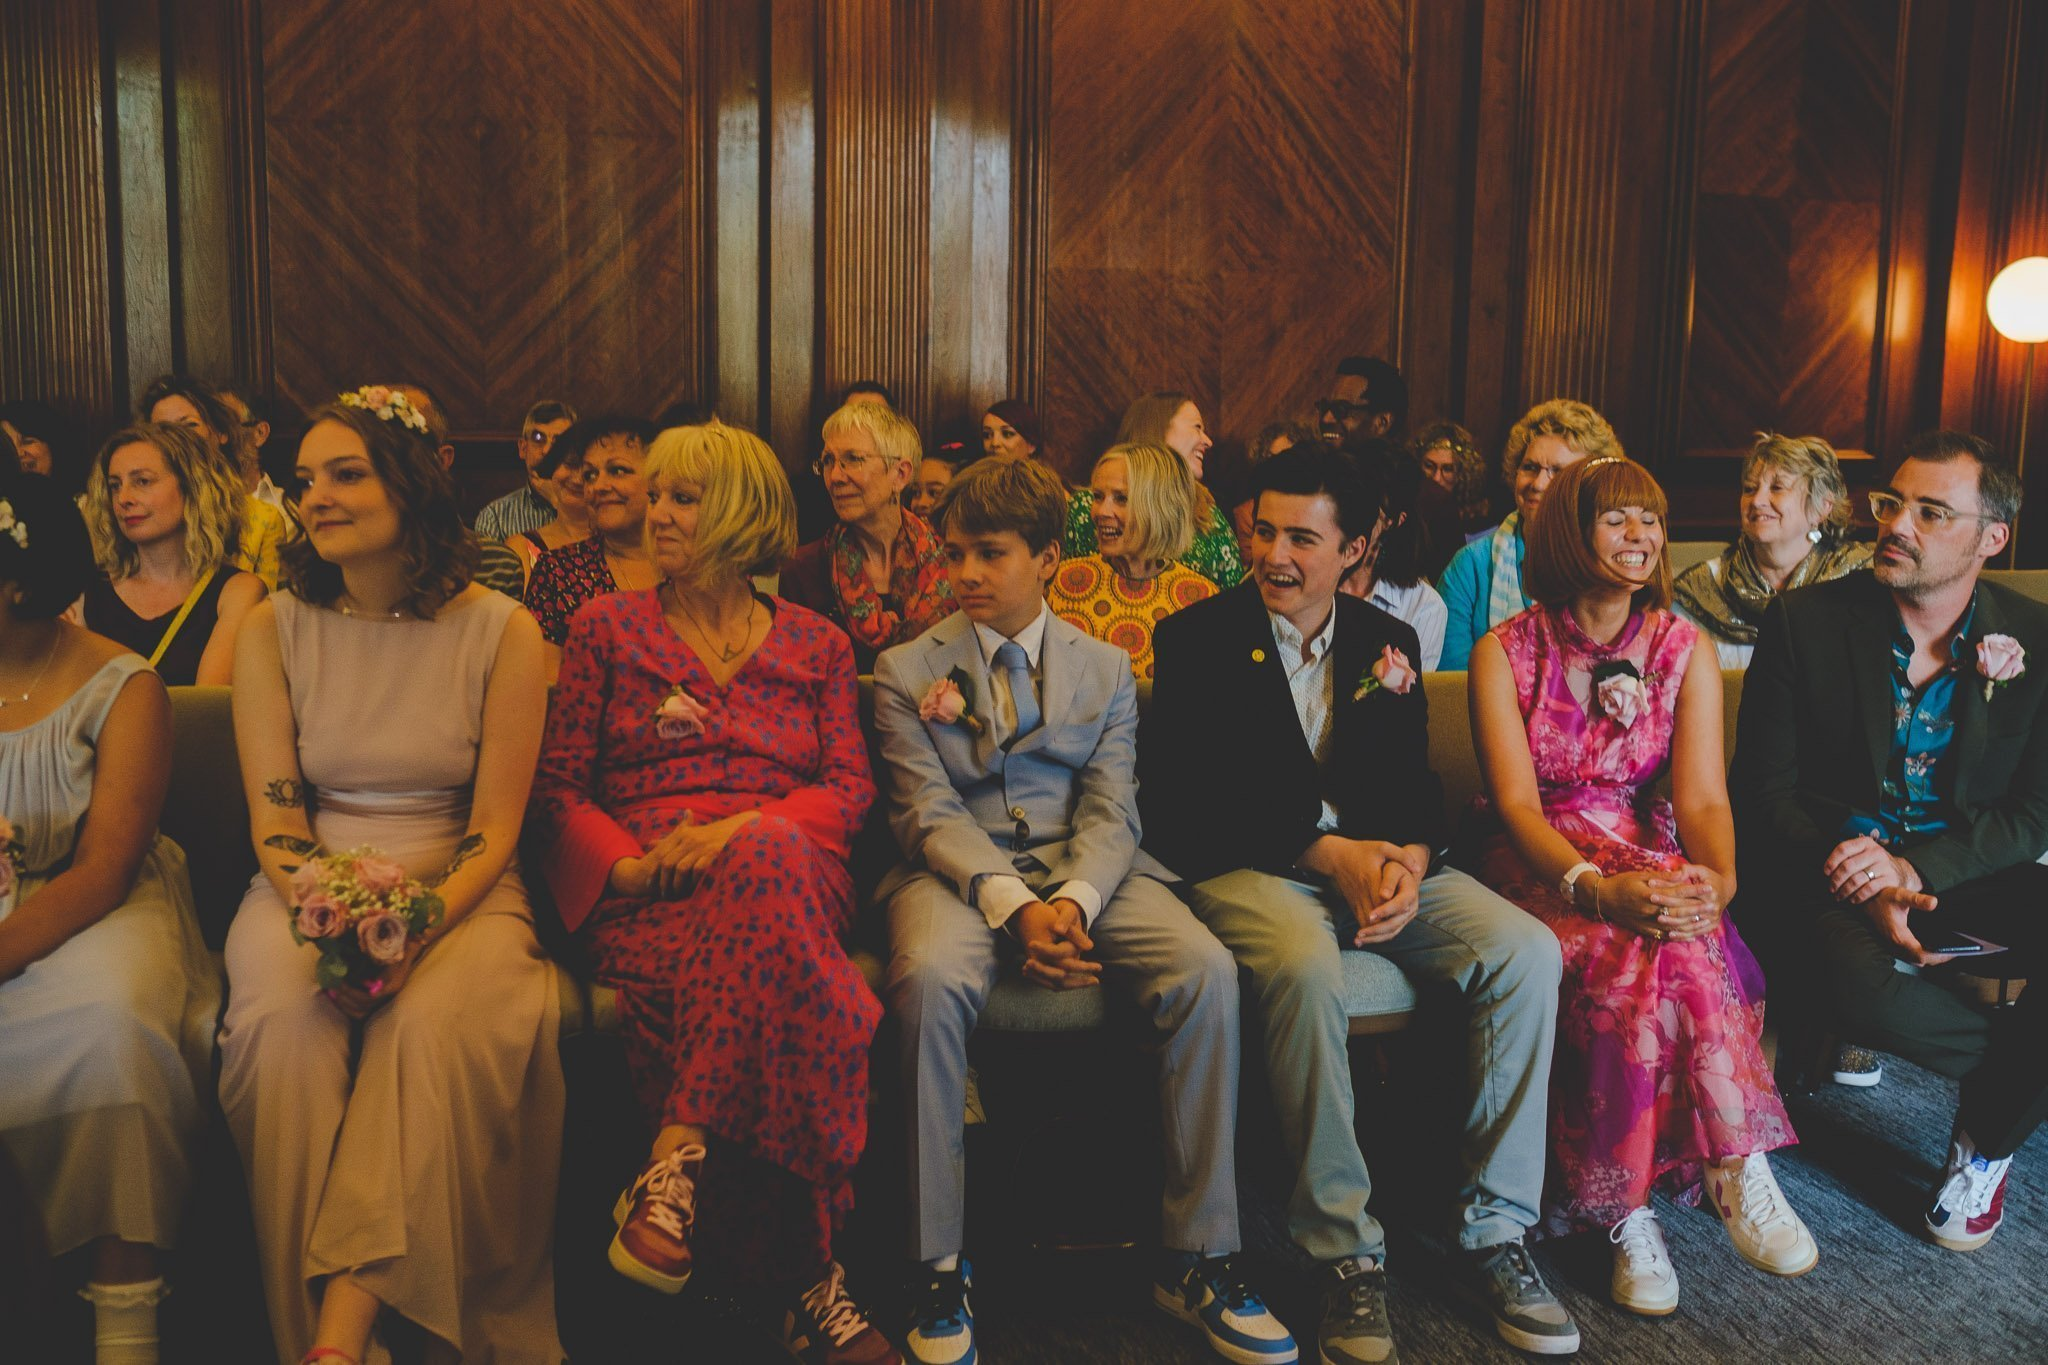 Wedding guests laughing in the Westminster Room of the Old Marylebone Town Hall London.